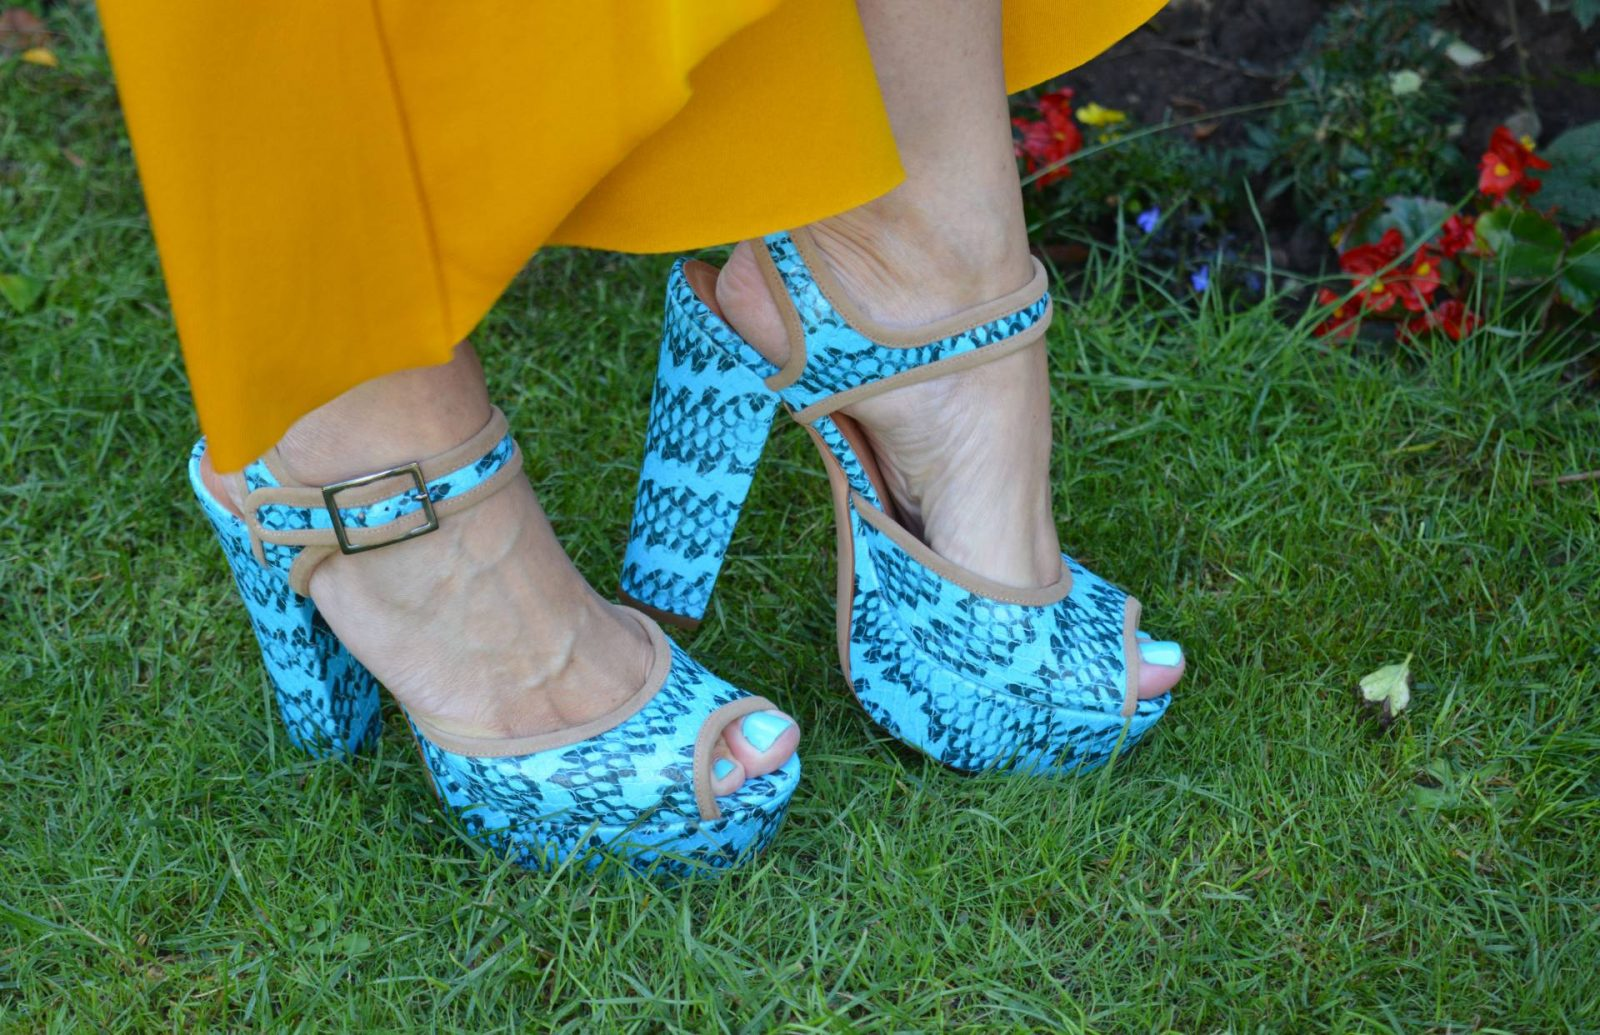 Zara Mustard co-ord with turquoise accessories, Biba turquoise platform sandals